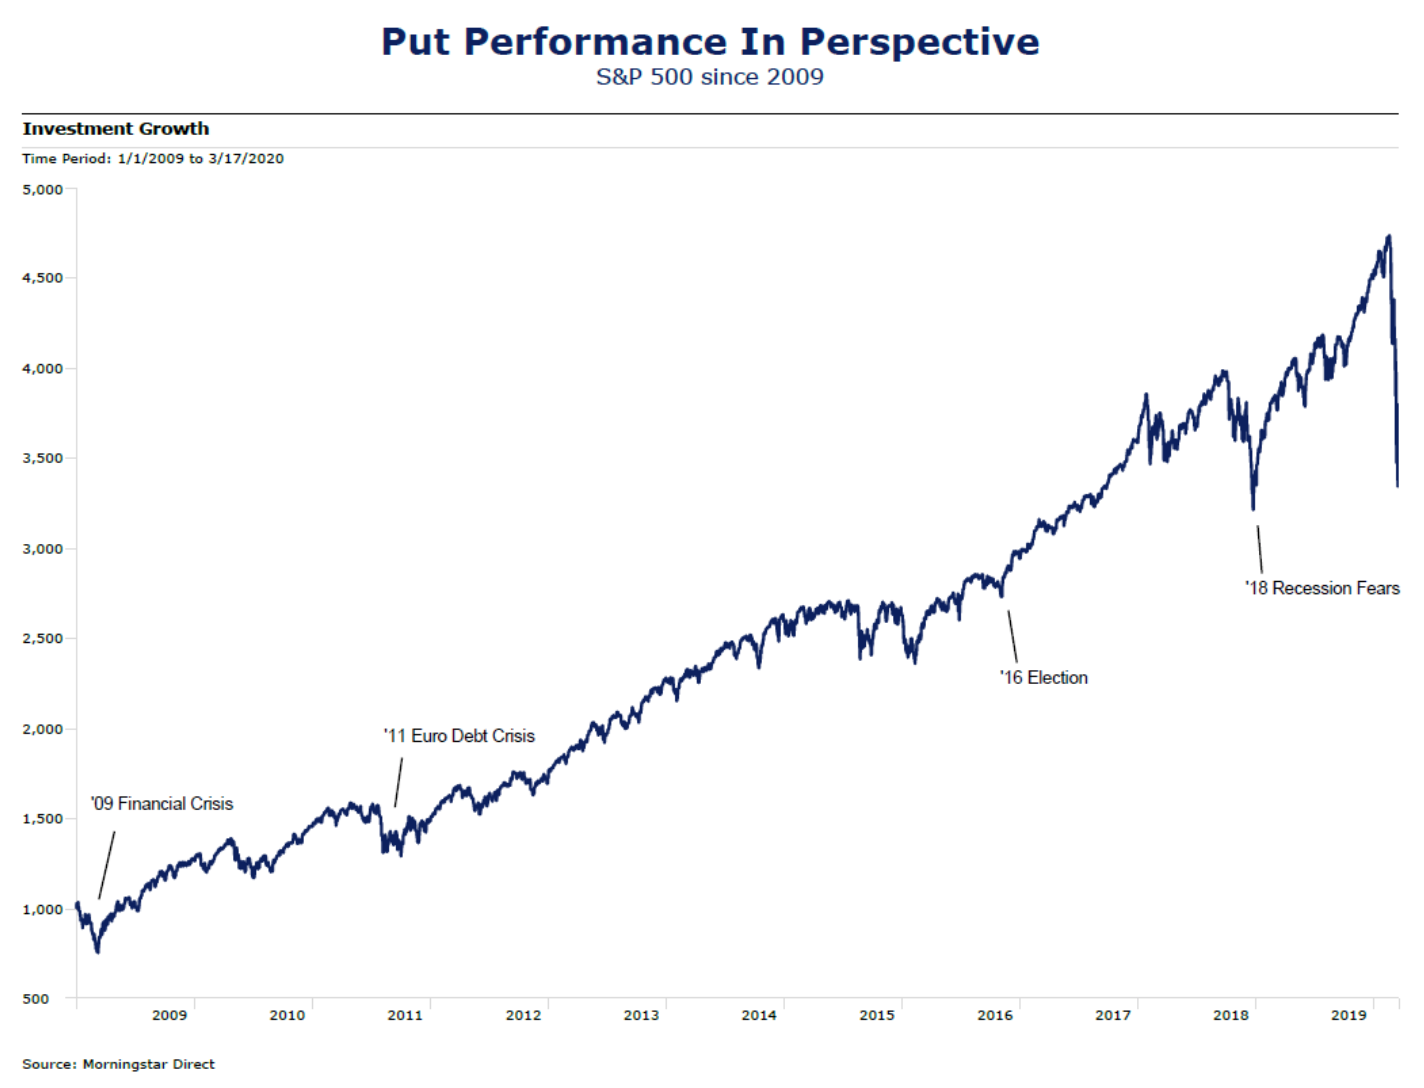 Chart: S&P Performance Since 2009